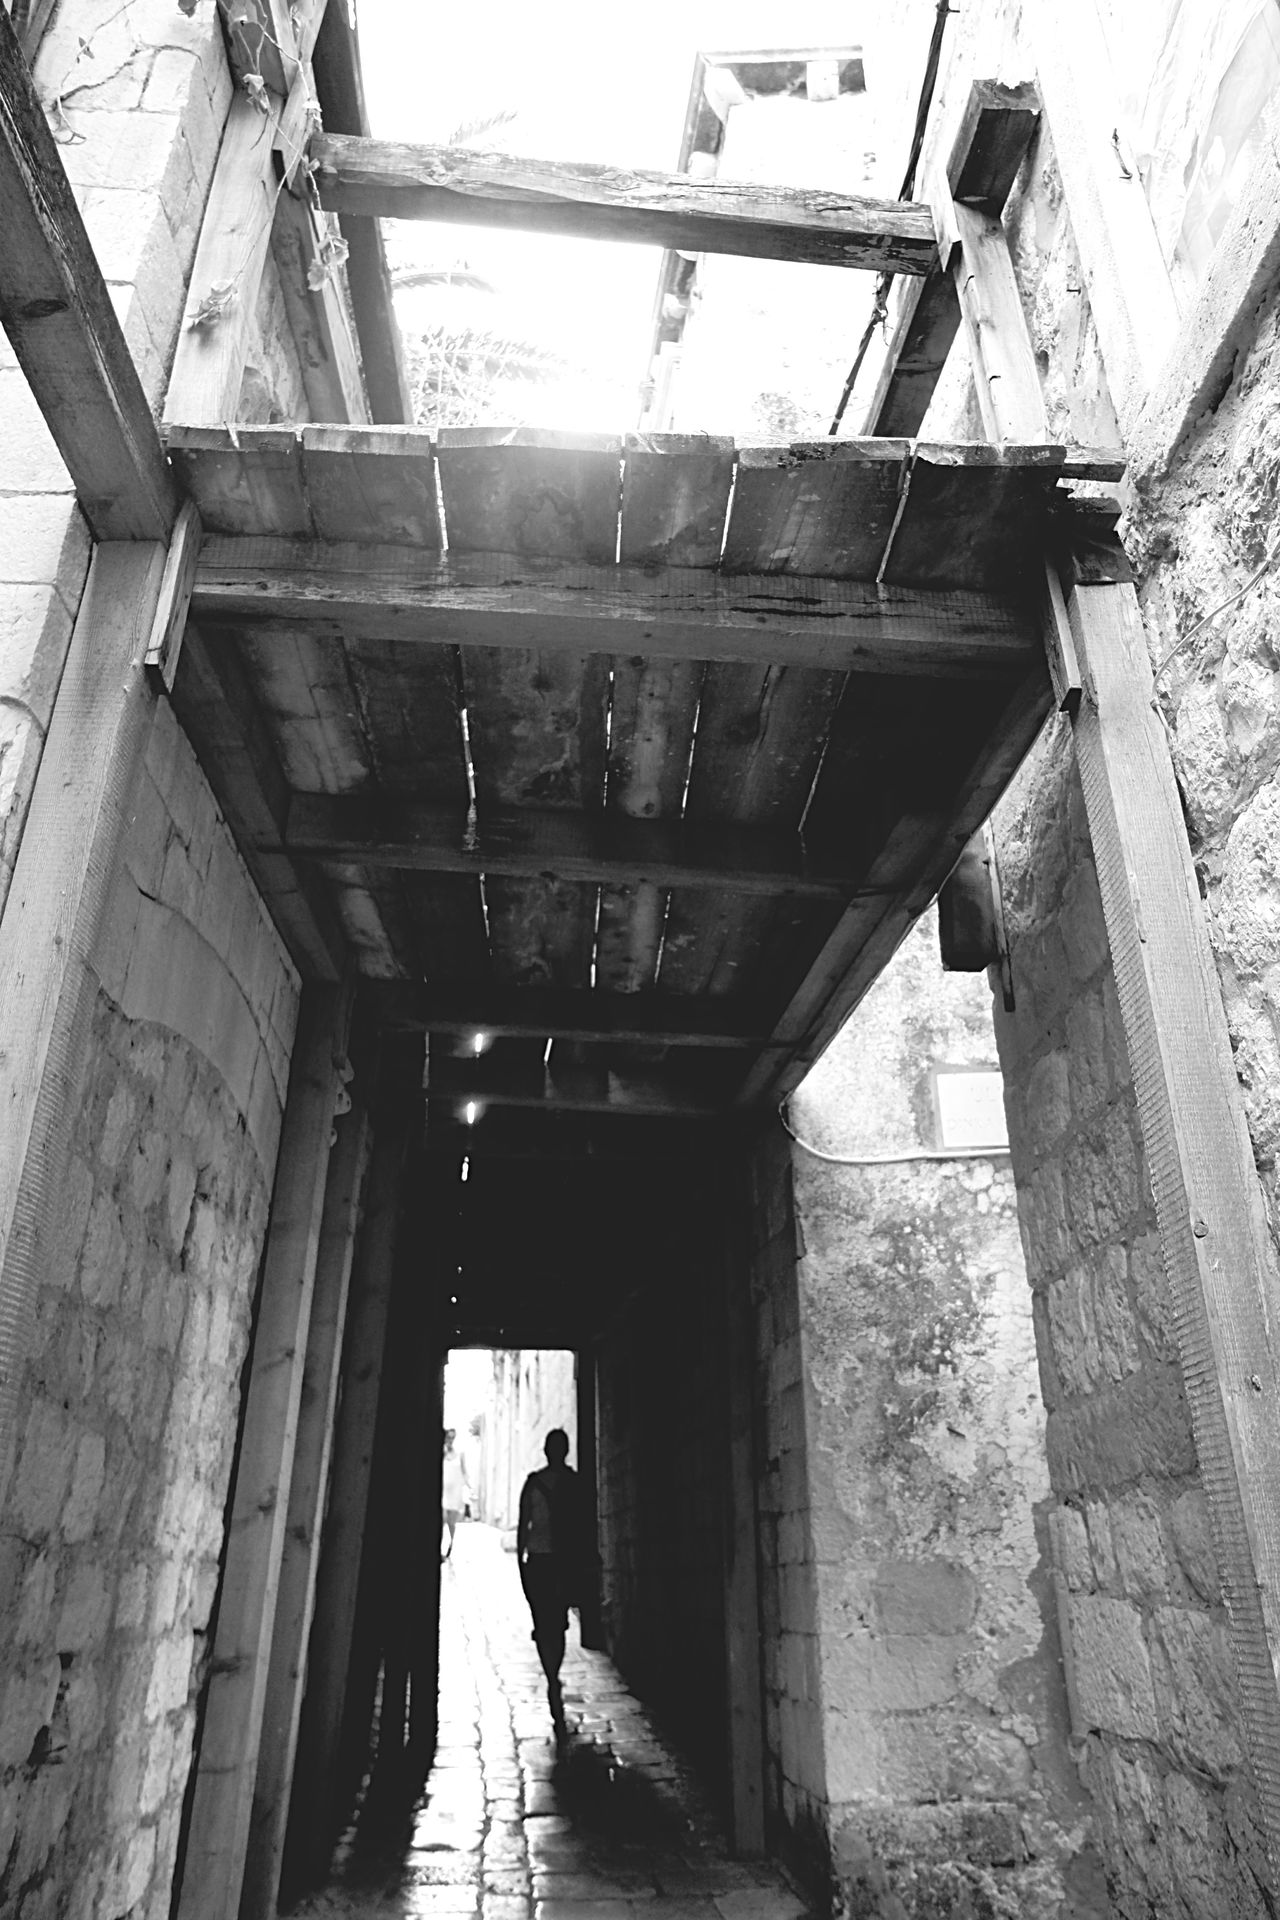 Some Scaffolding in an Alley in Old Town, Dubrovnik. Shades Of Grey Bw_friday_challenge B&w Photography Streetphoto_bw Streetphotography B&w Street Photography